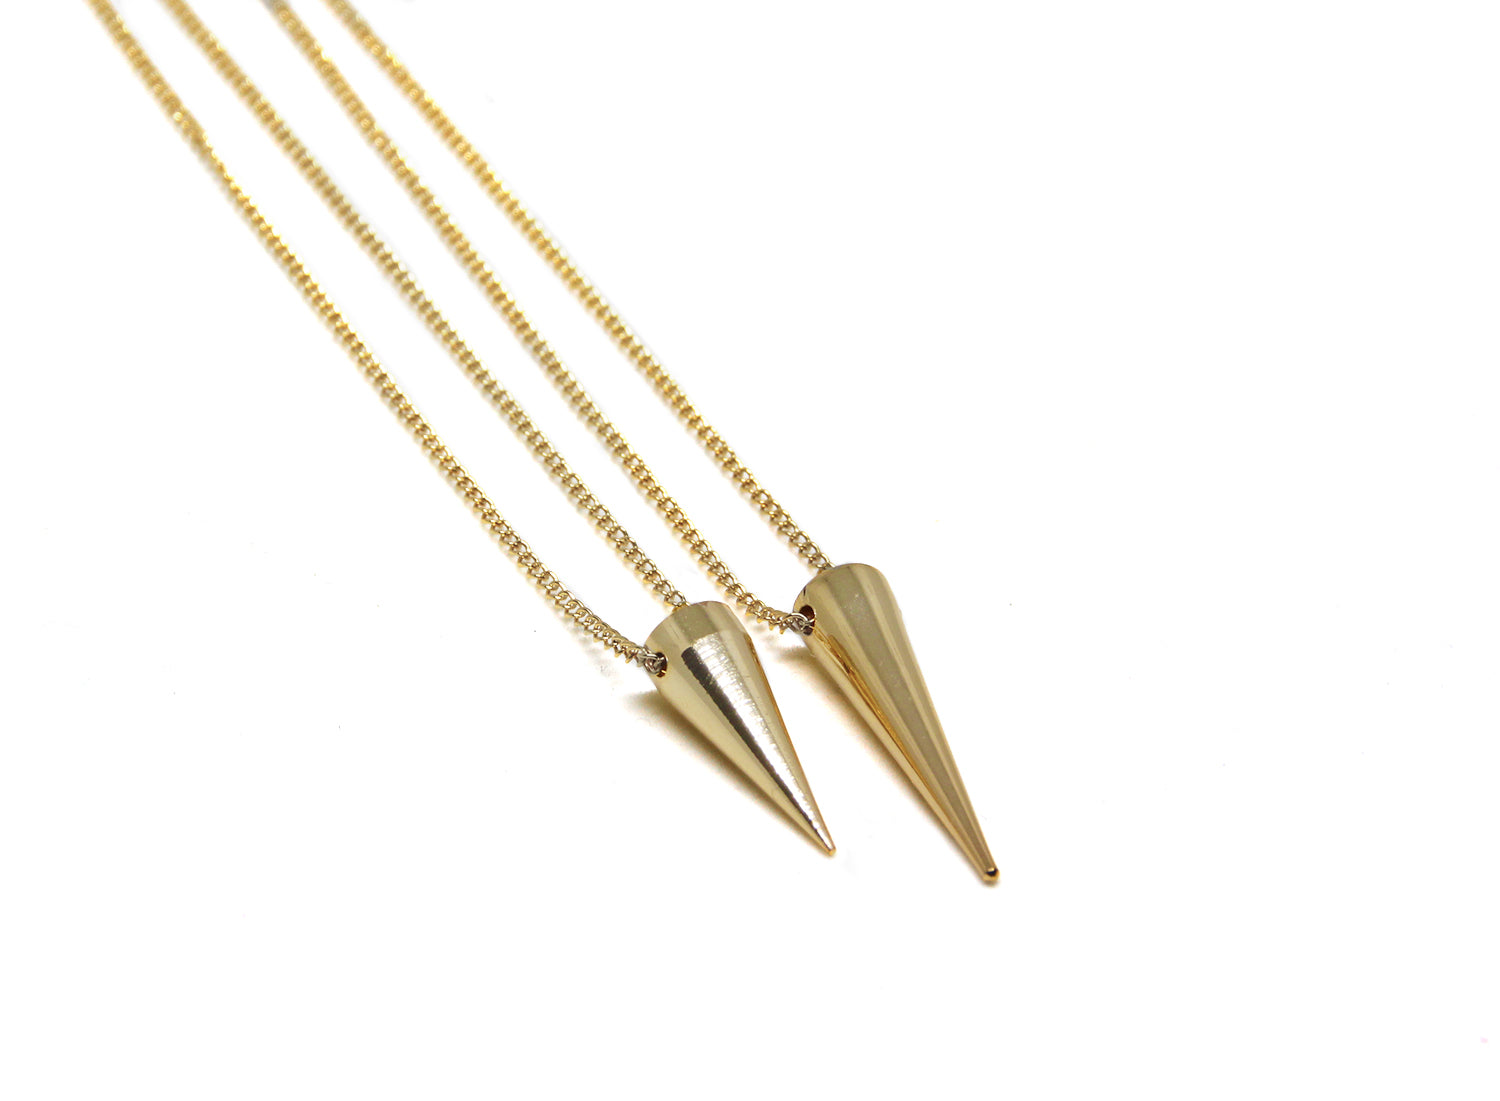 llayers jewelry necklace gold punk spike collier pointe or a